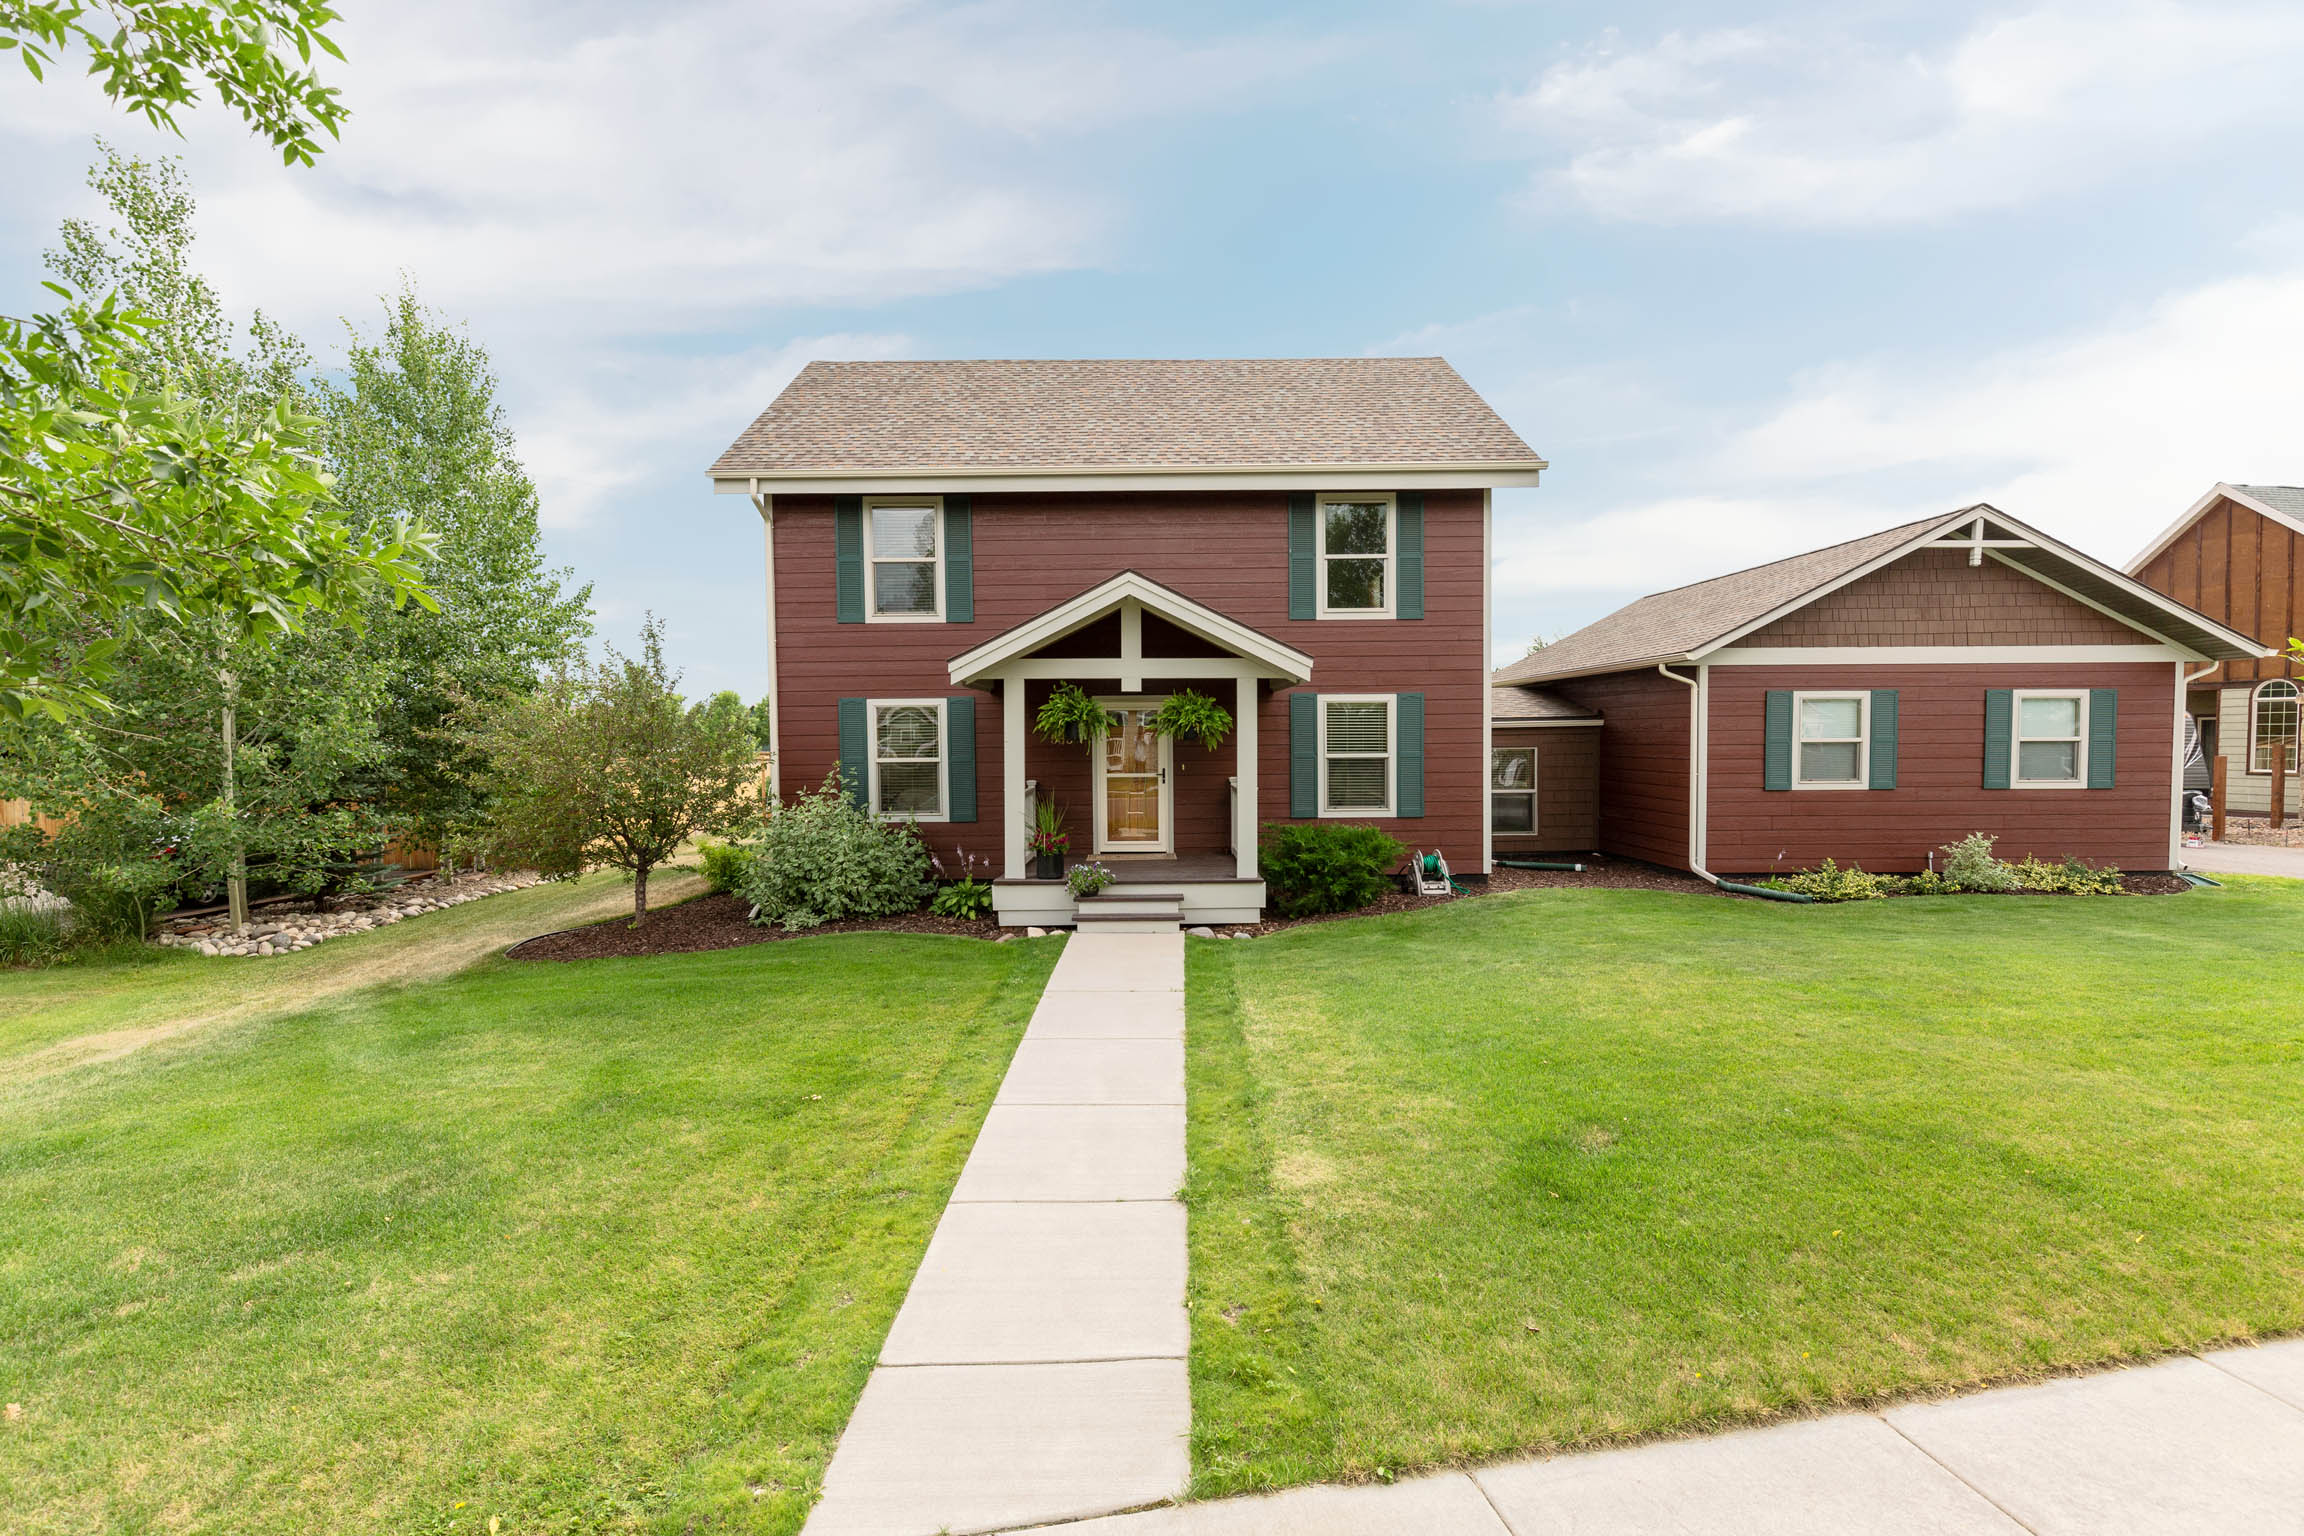 New Listing: Home on Large Lot in Landmark Subdivision